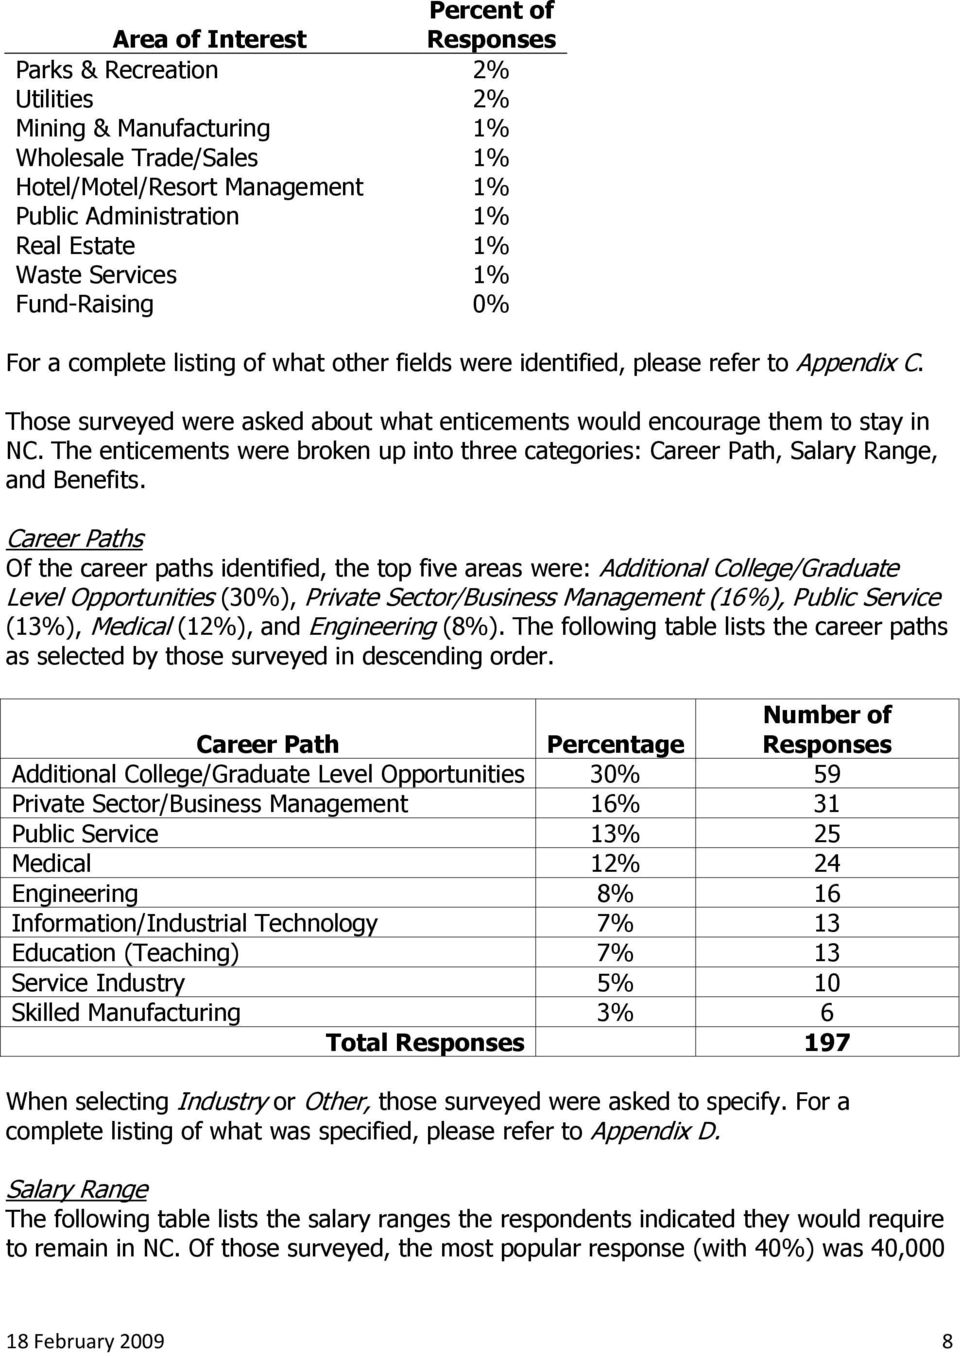 North Carolina Military Job Interest Exit Survey Summary Report - PDF